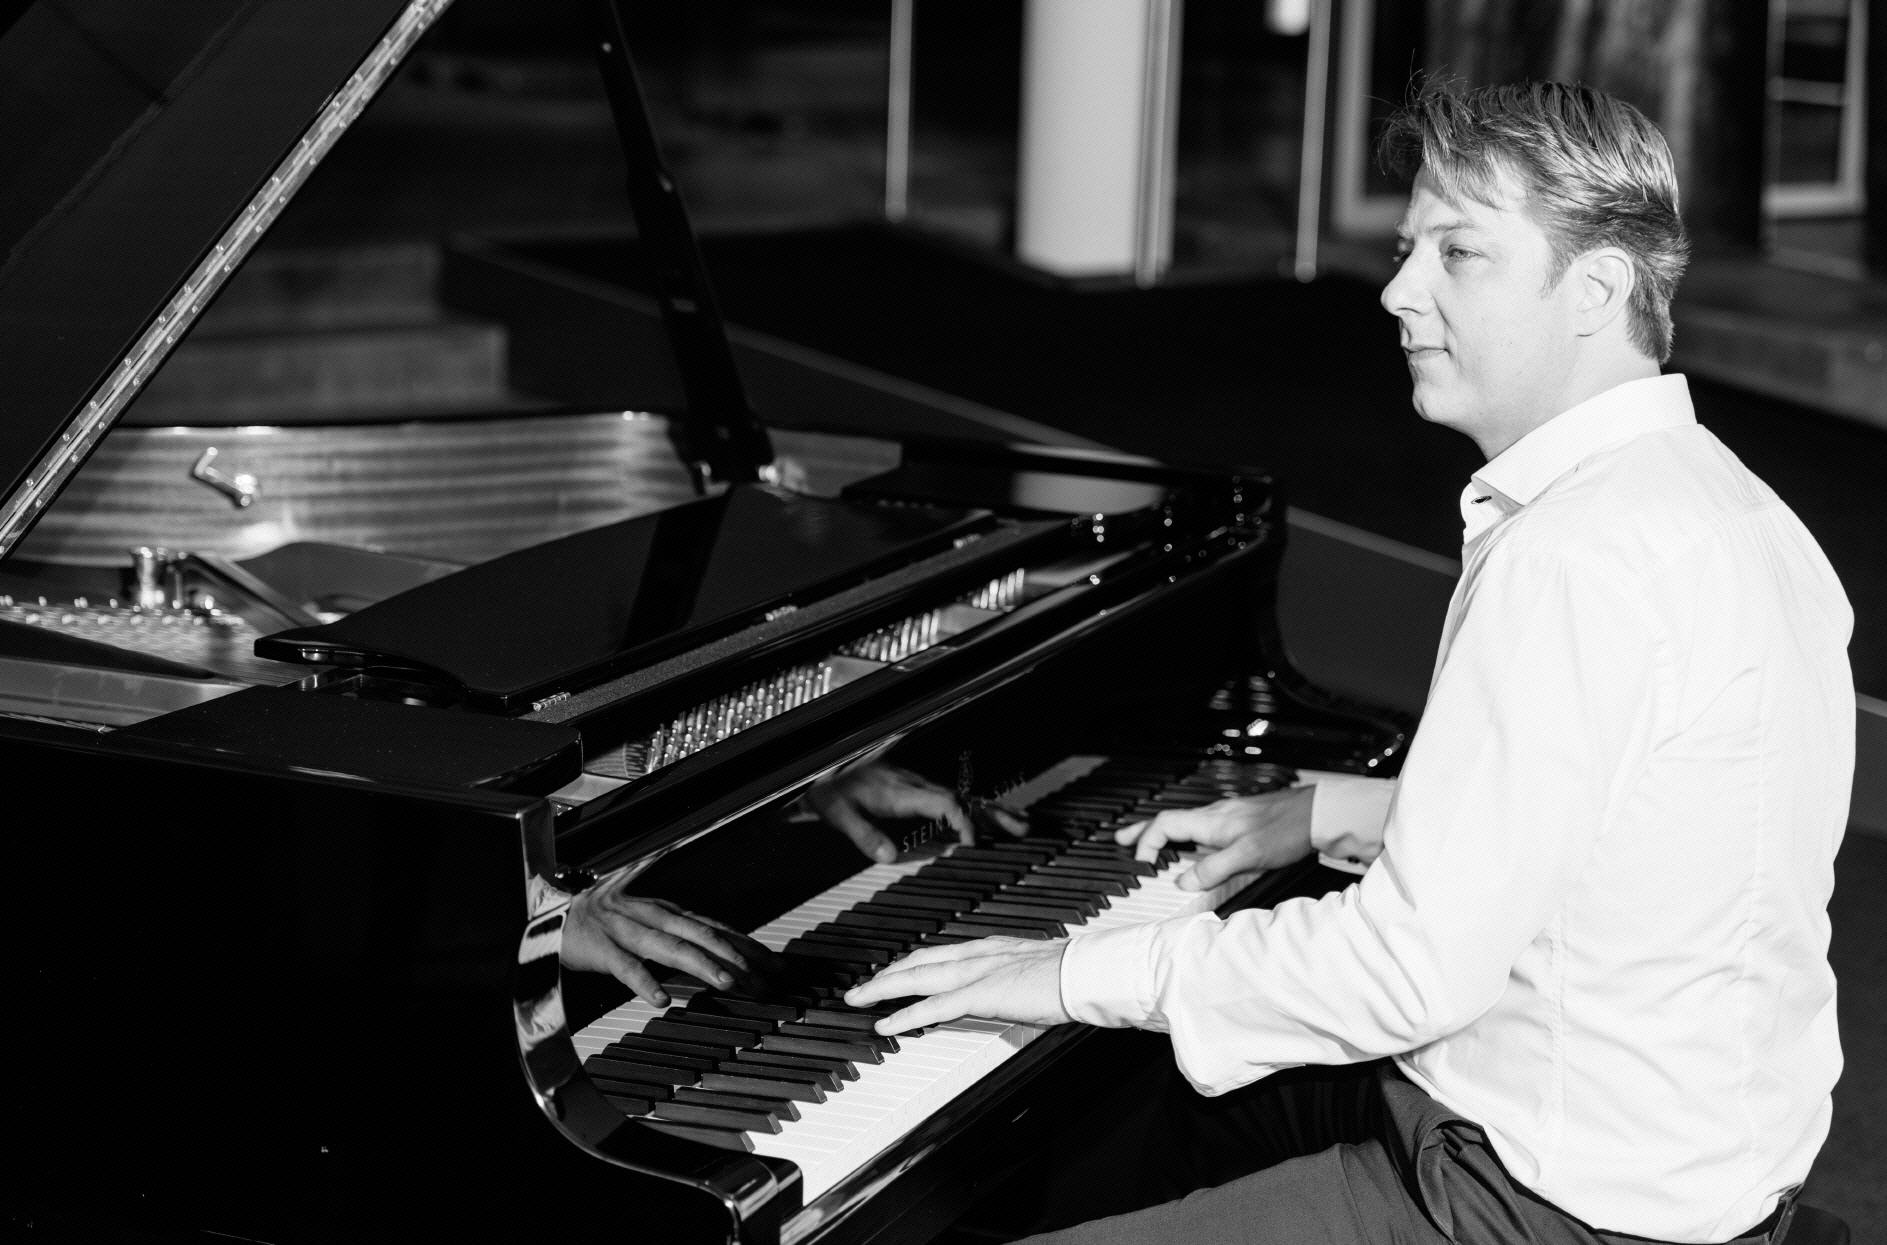 Pianist in Wuppertal: Alexander Hoell